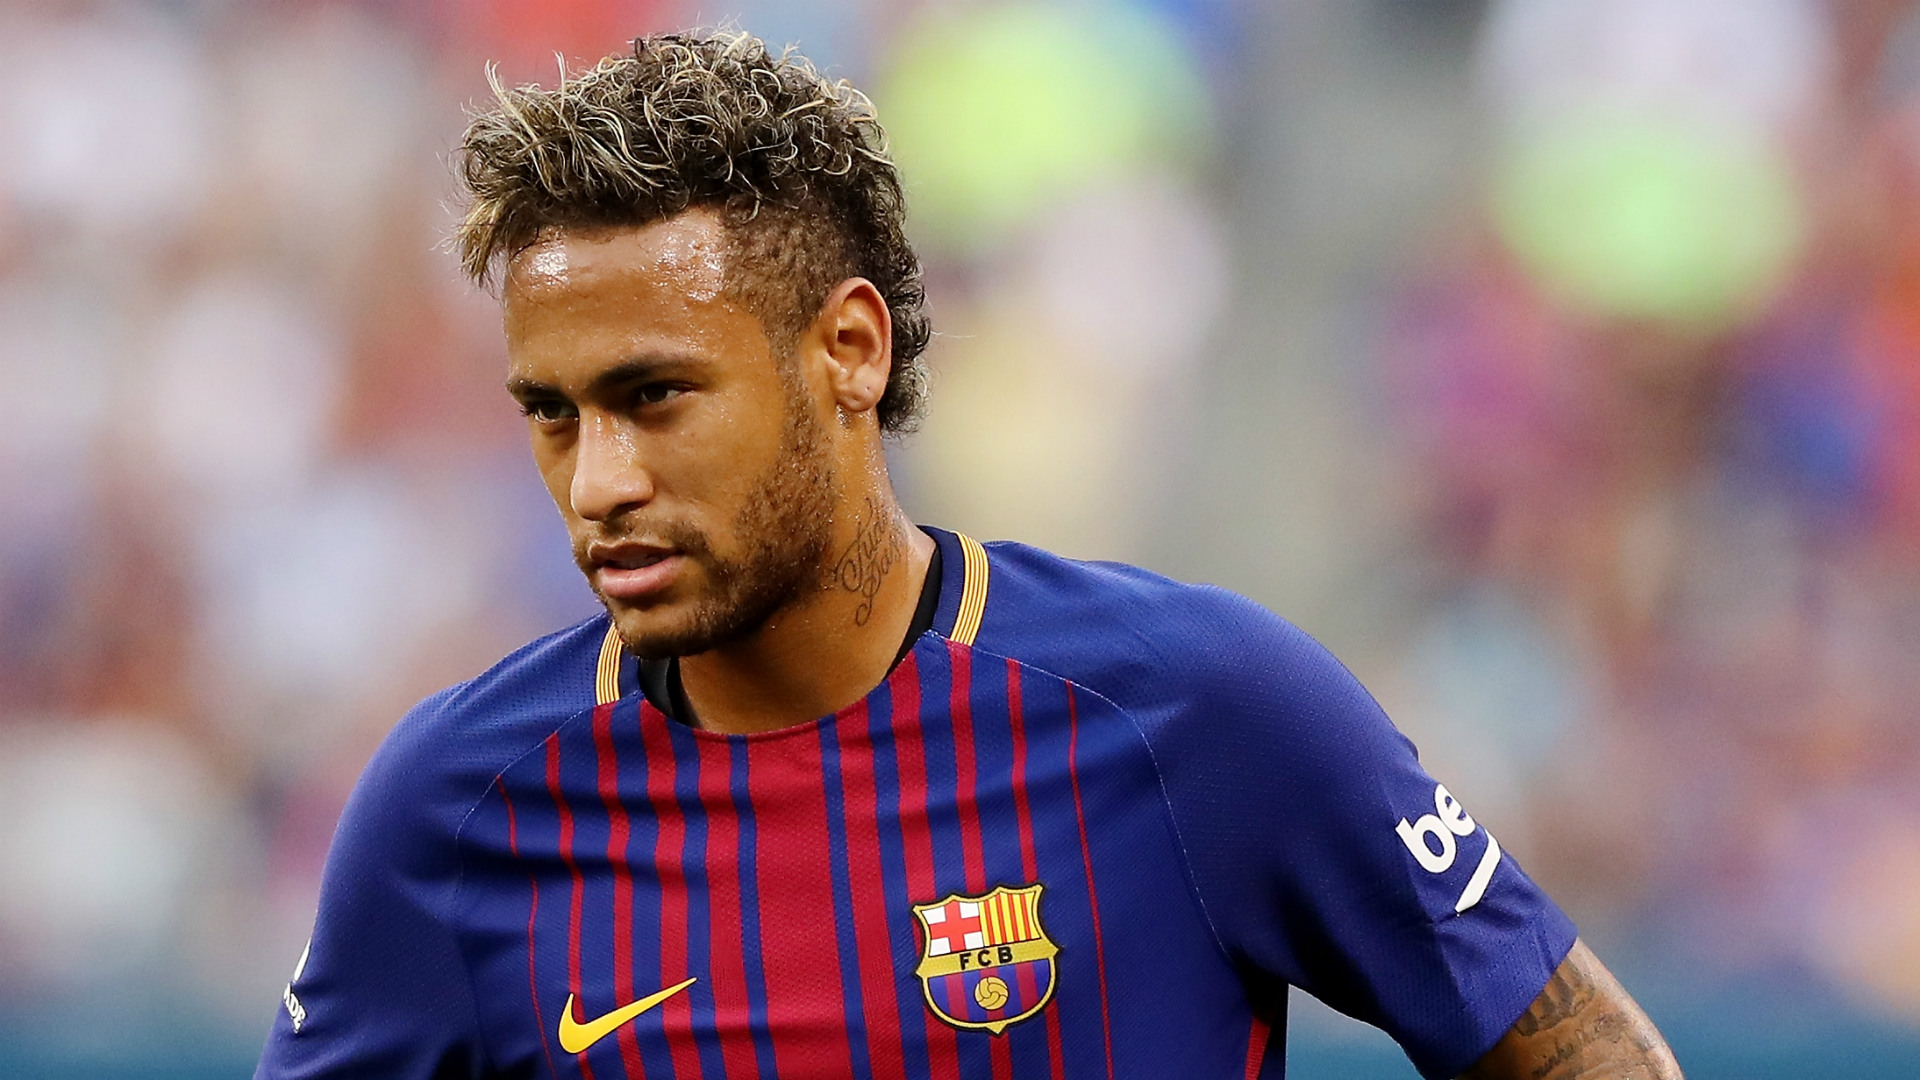 Neymar's inspired performance for Barcelona against PSG in the Champions League